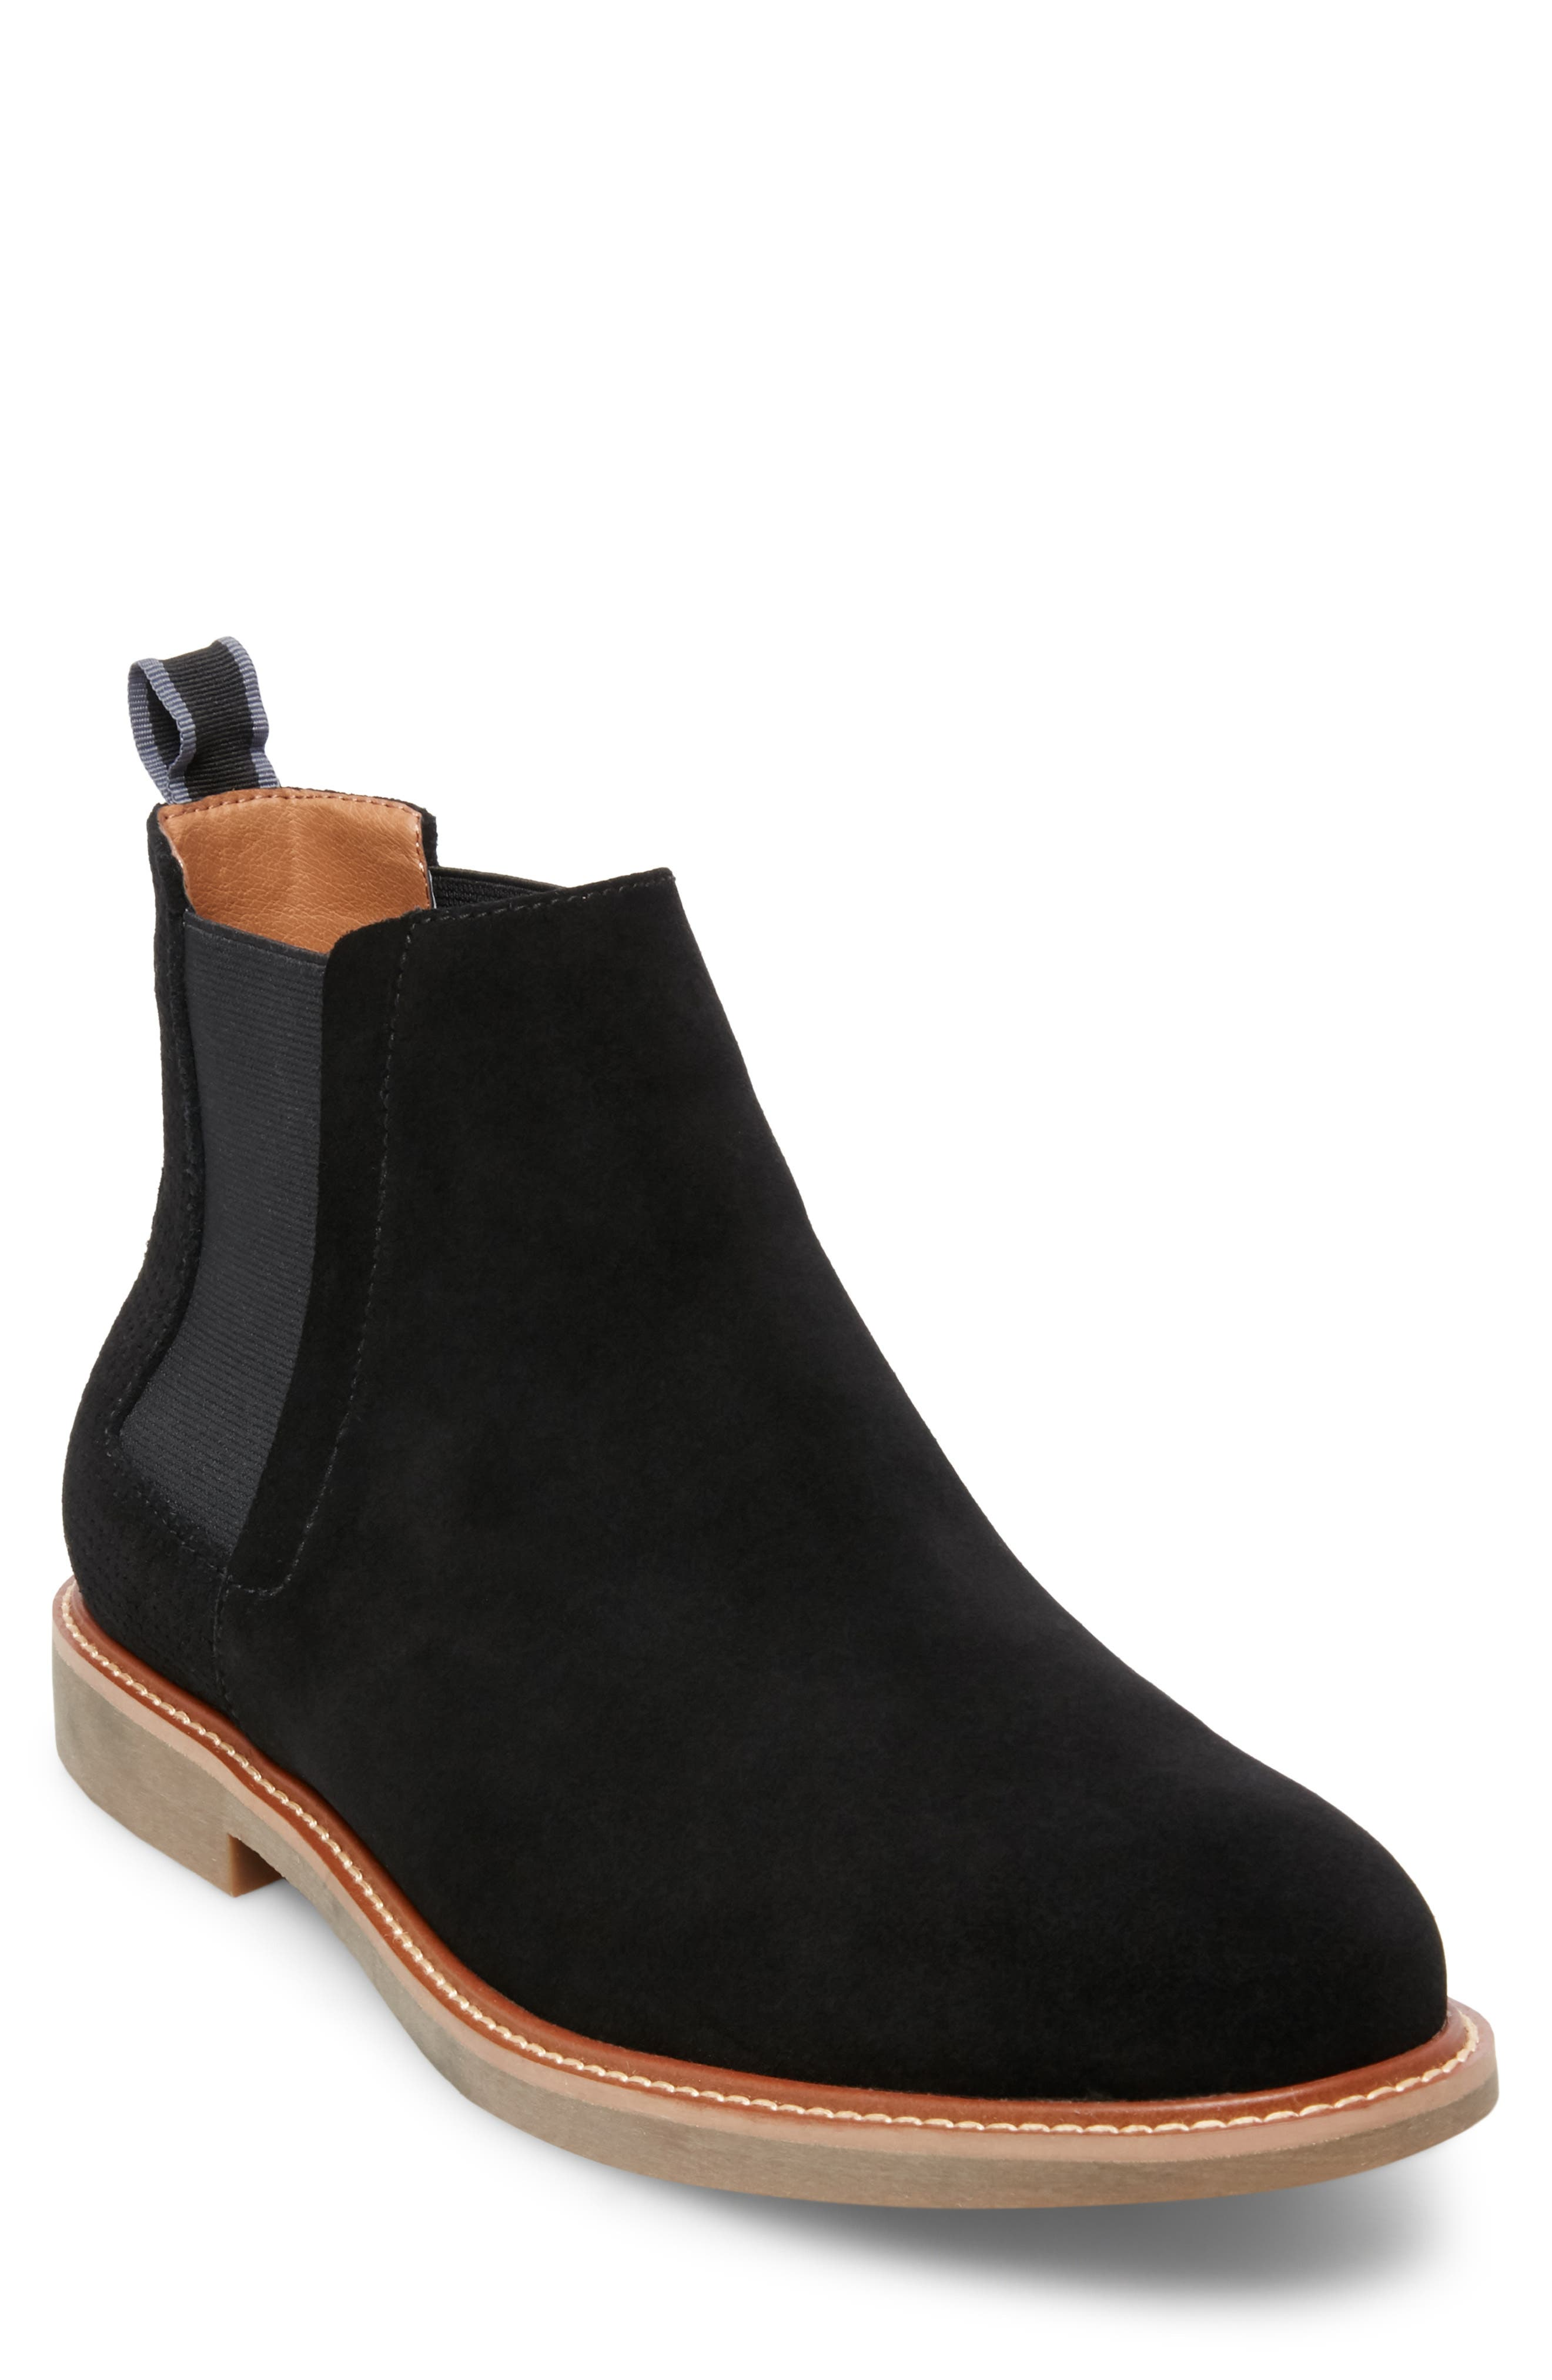 STEVE MADDEN Highlyte Textured Chelsea Boot, Main, color, BLACK SUEDE